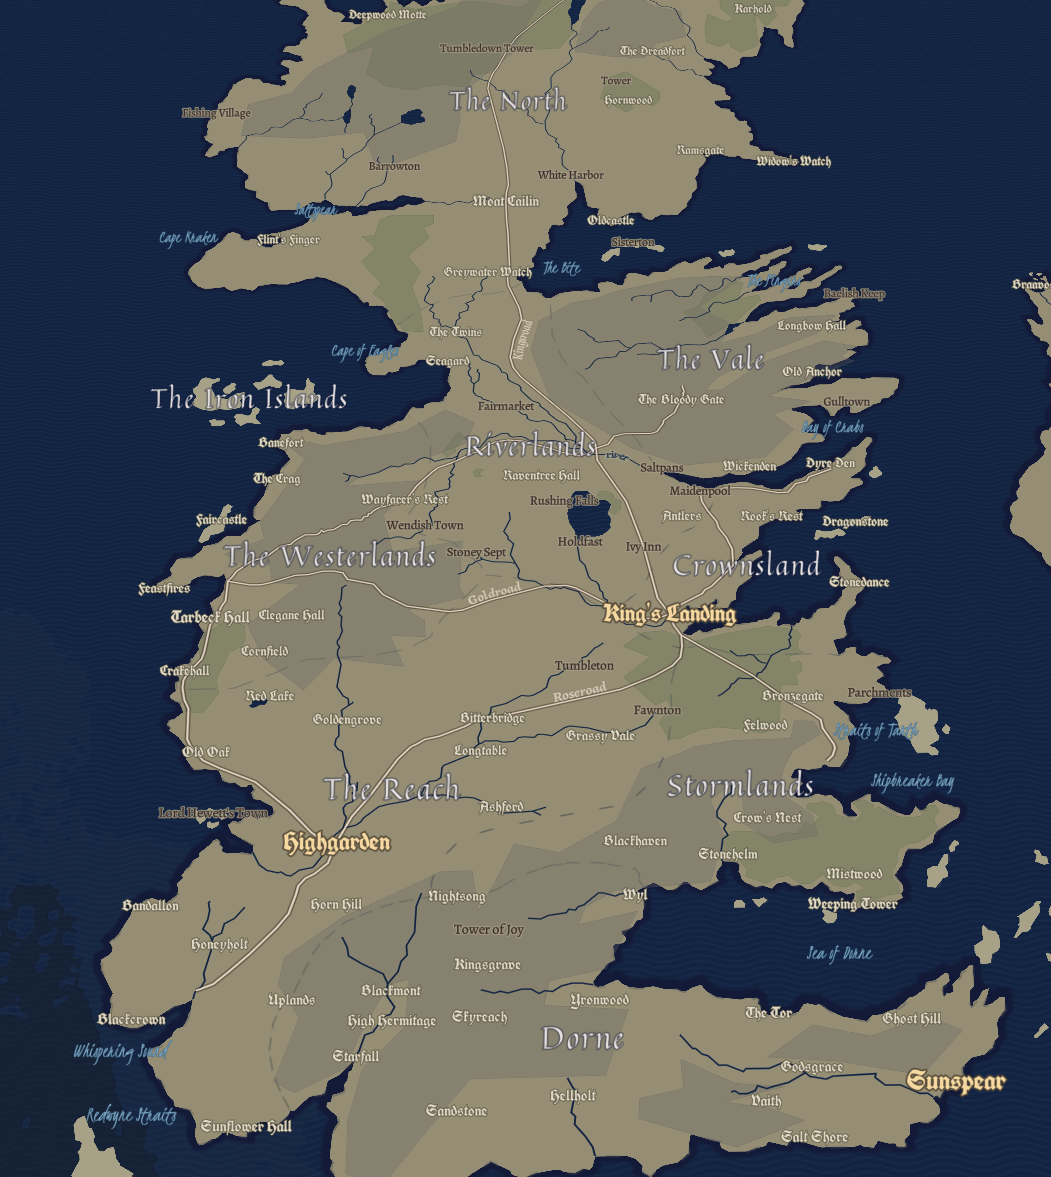 Design your own Game of Thrones-inspired map - Points of interest on